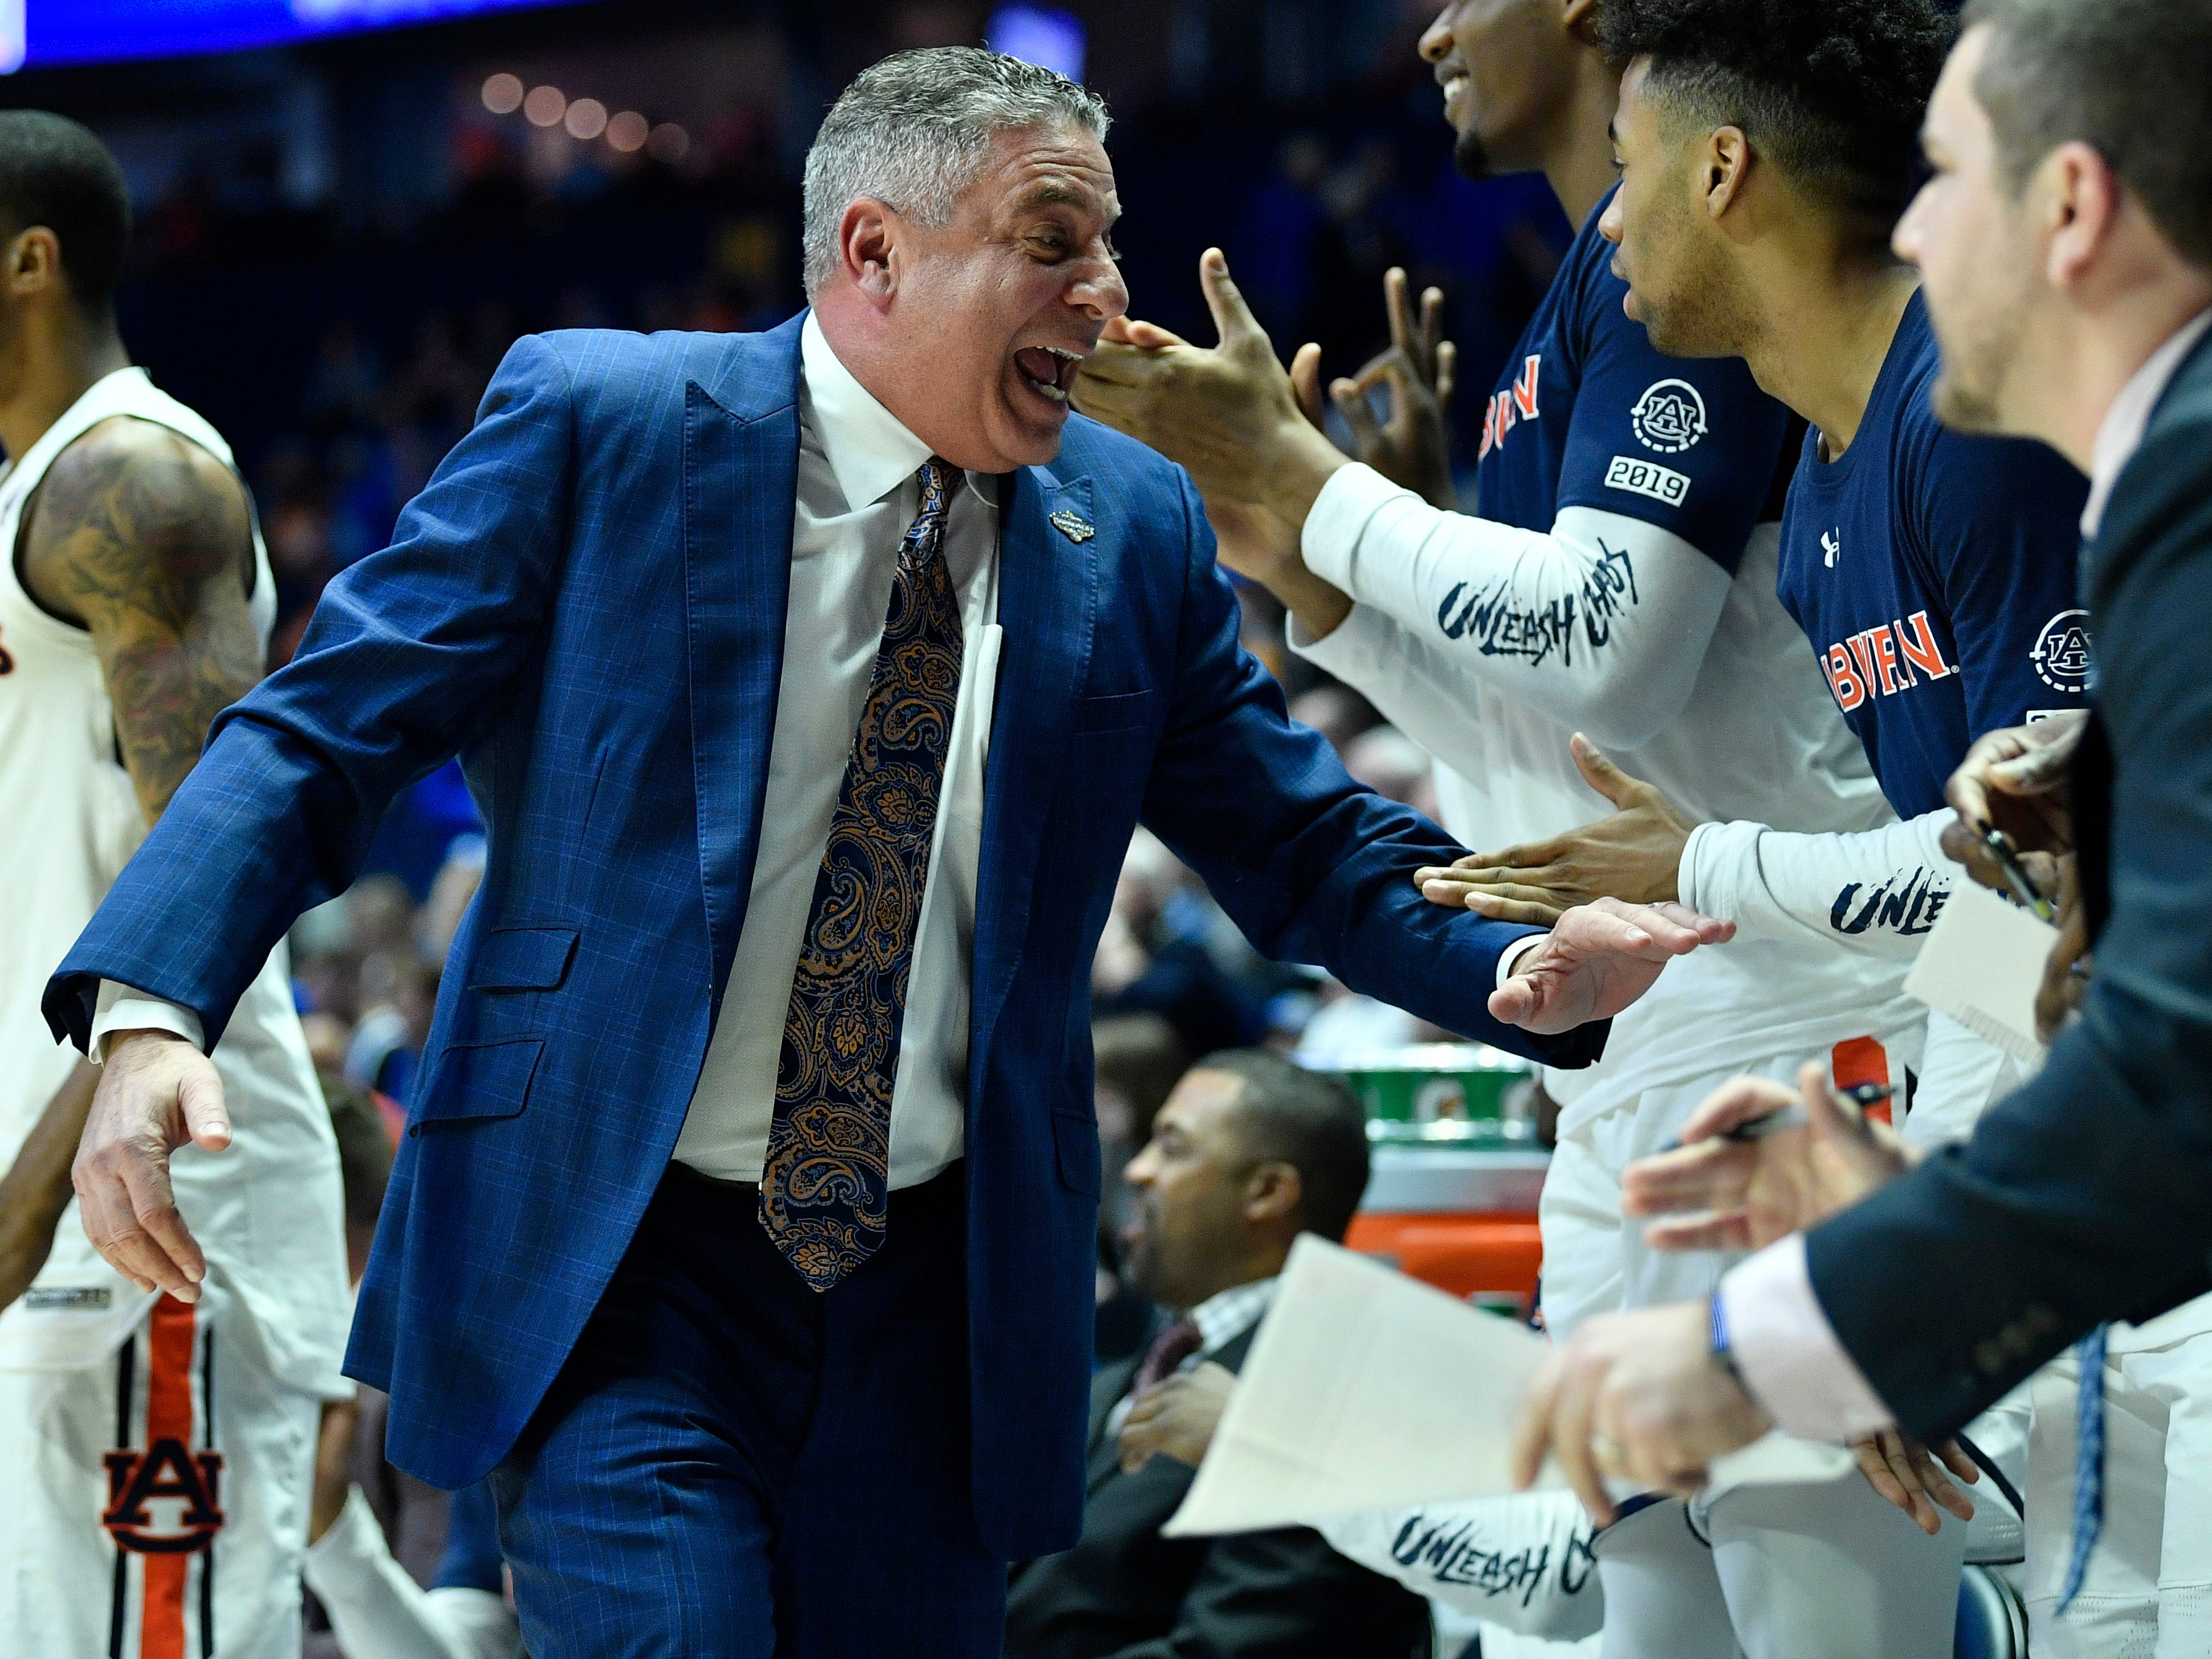 Auburn head coach Bruce Pearl slaps hands during the first half of the SEC Men's Basketball Tournament game against Florida at Bridgestone Arena in Nashville, Tenn., Saturday, March 16, 2019.